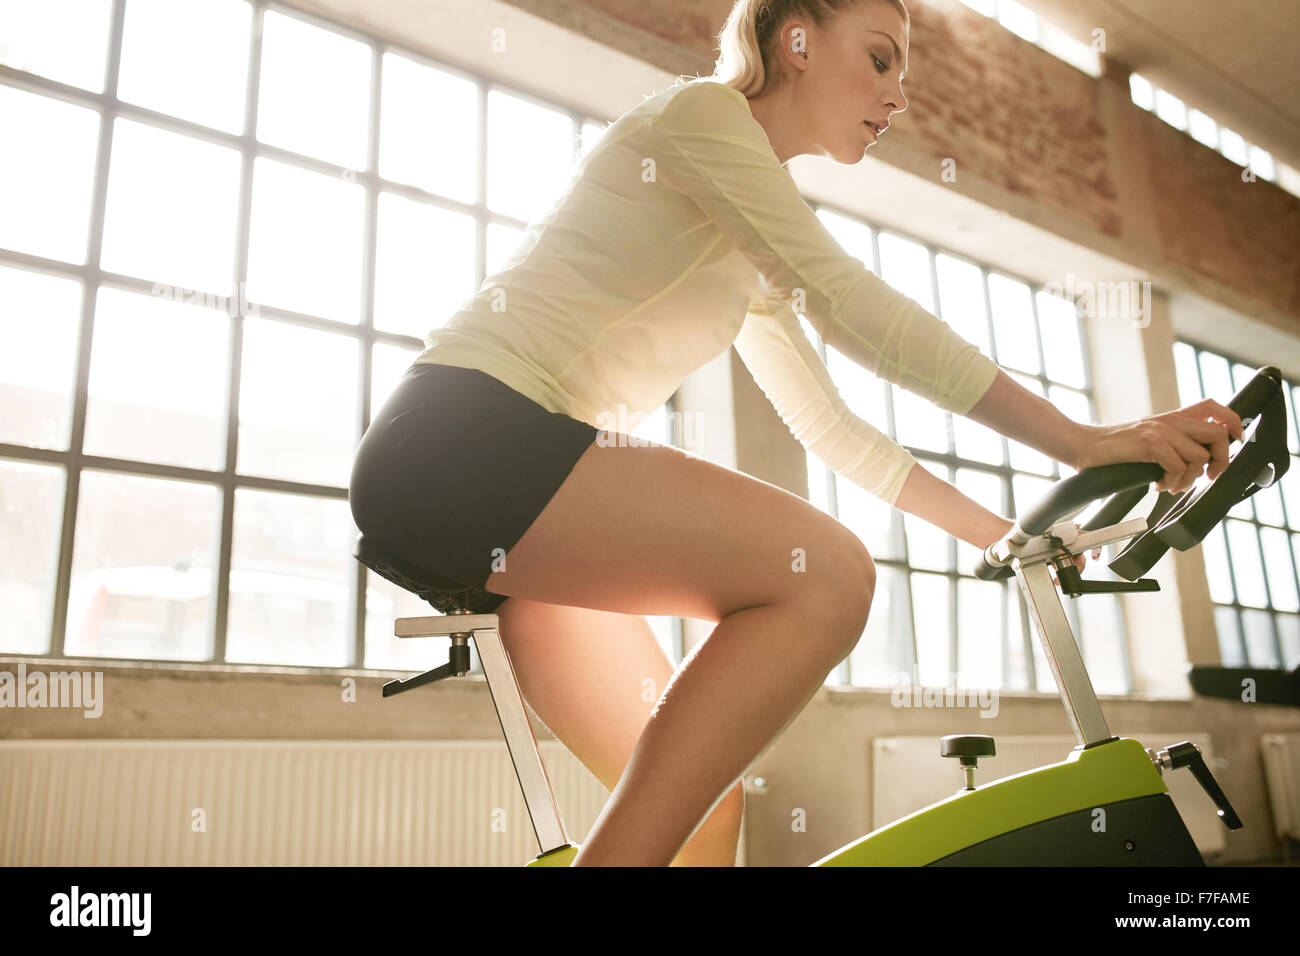 Side view of fitness woman on bicycle in gym. Young female athlete spinning on bicycles at health club. - Stock Image